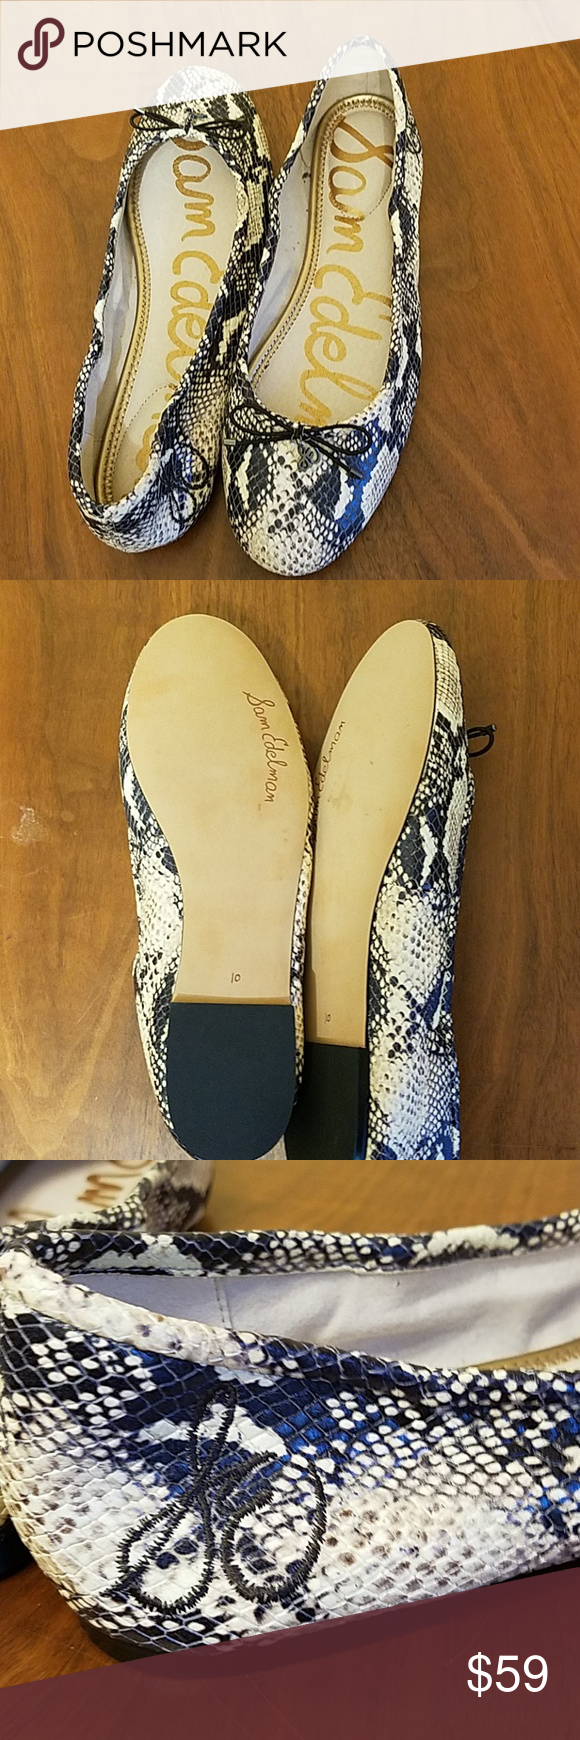 9098917da Sam Edelman Felicia Snake Print Flats Brand new. No tags or box. Size 10  but runs small. I usually take 9 or 9.5. Sam Edelman Shoes Flats   Loafers